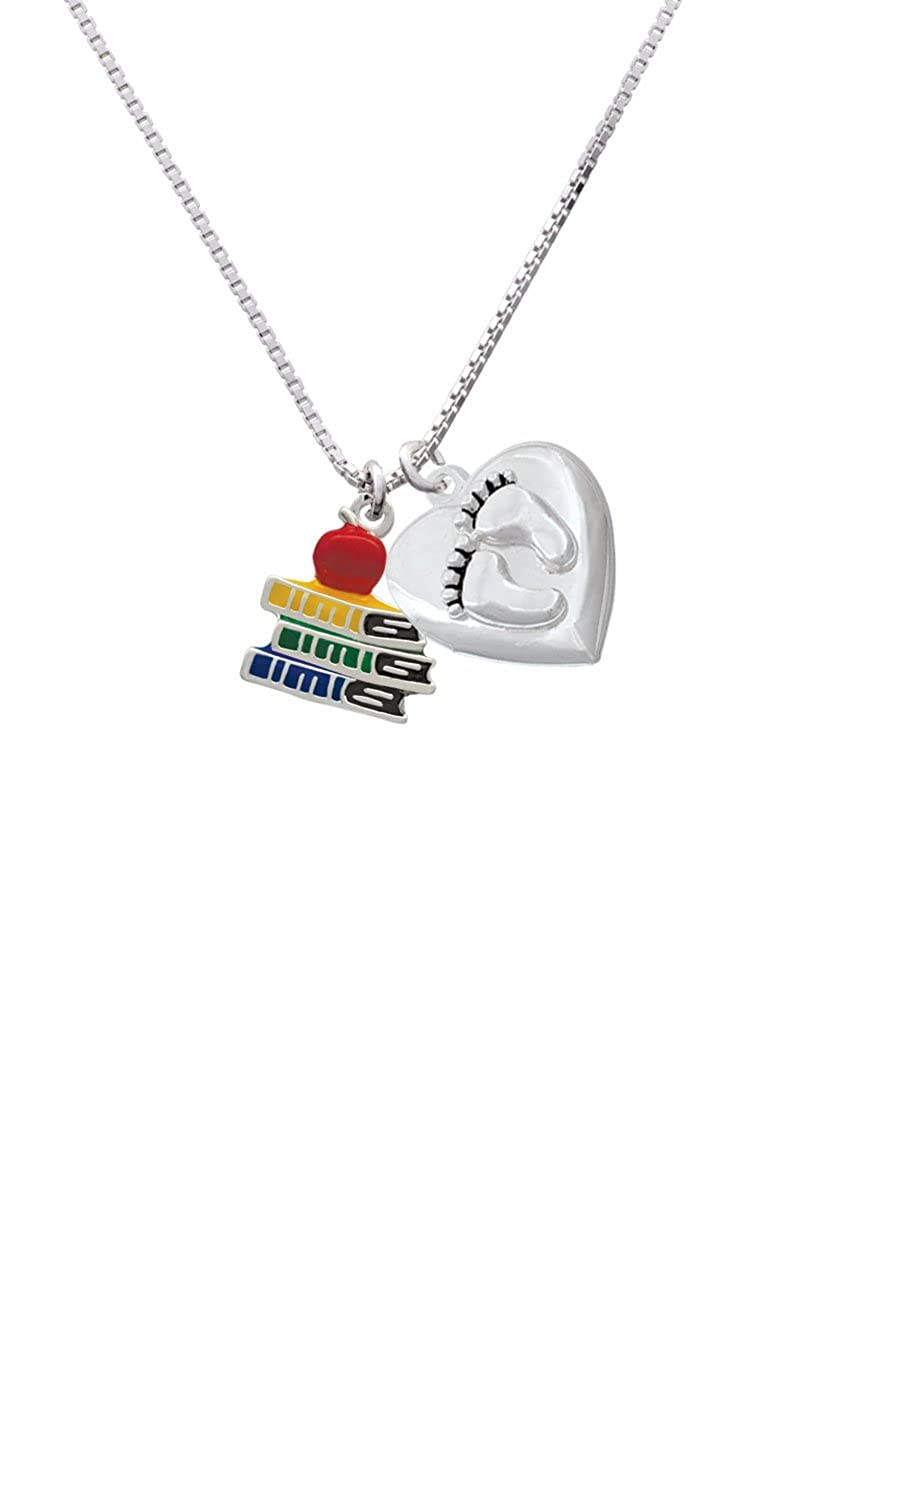 Enamel School Books with a Red Apple Custom Engraved Baby Feet Heart Locket Necklace